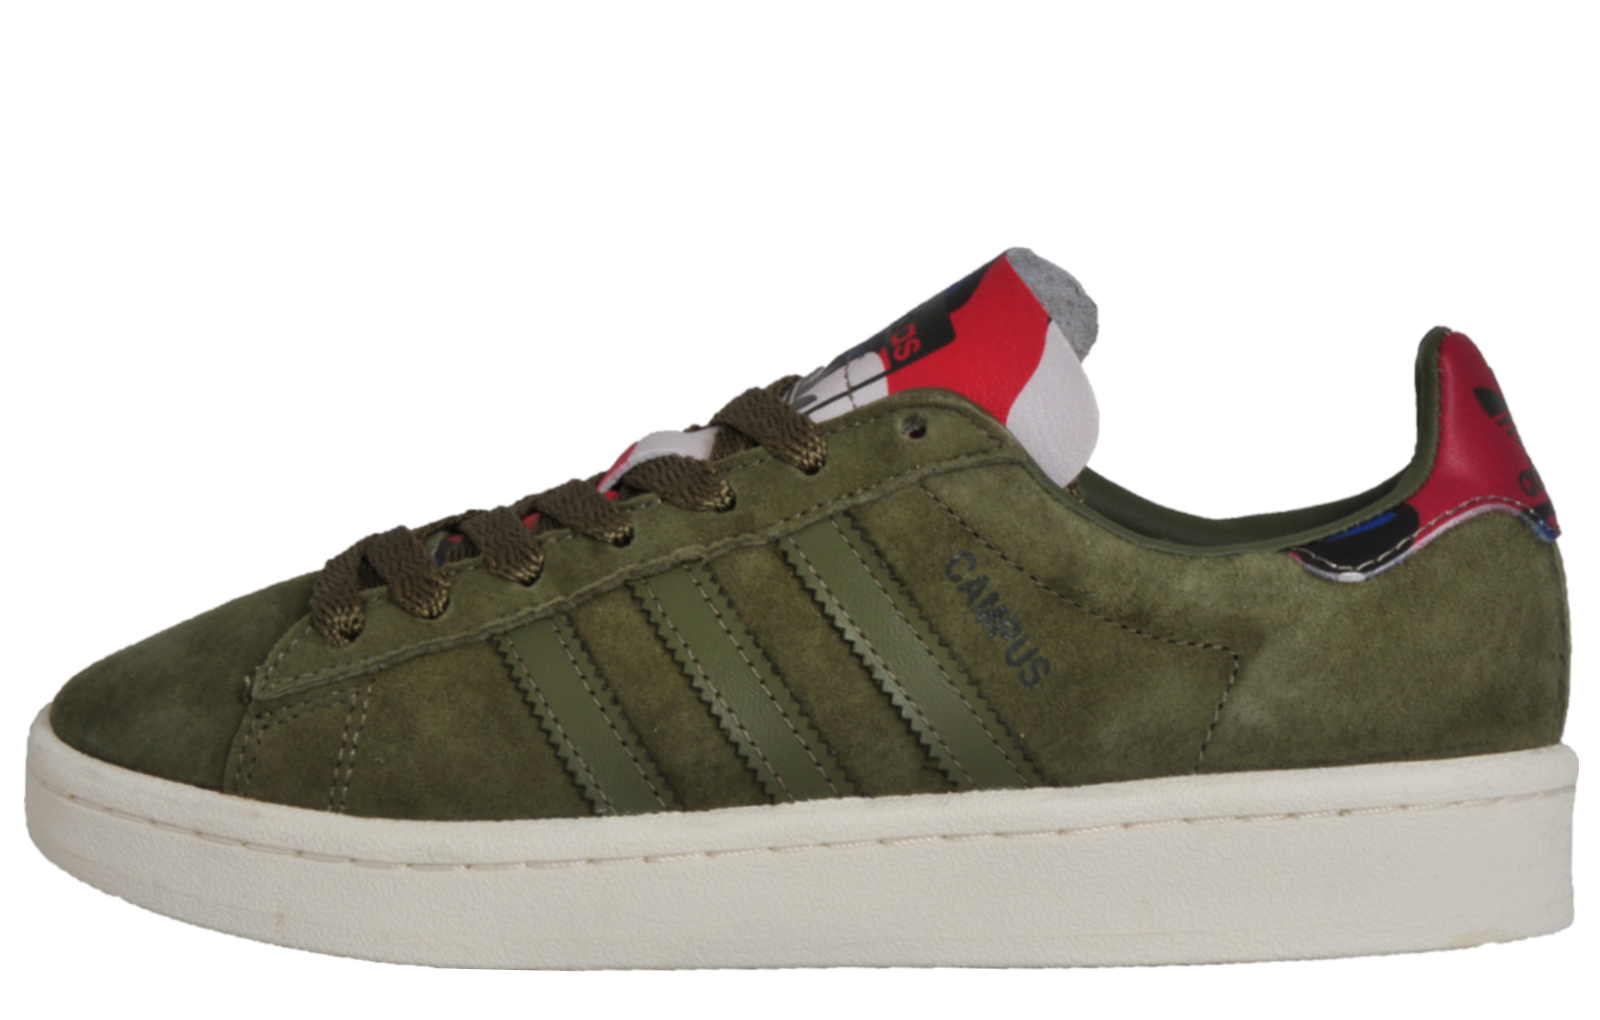 Adidas Originals Campus 80s Mens - AD163451